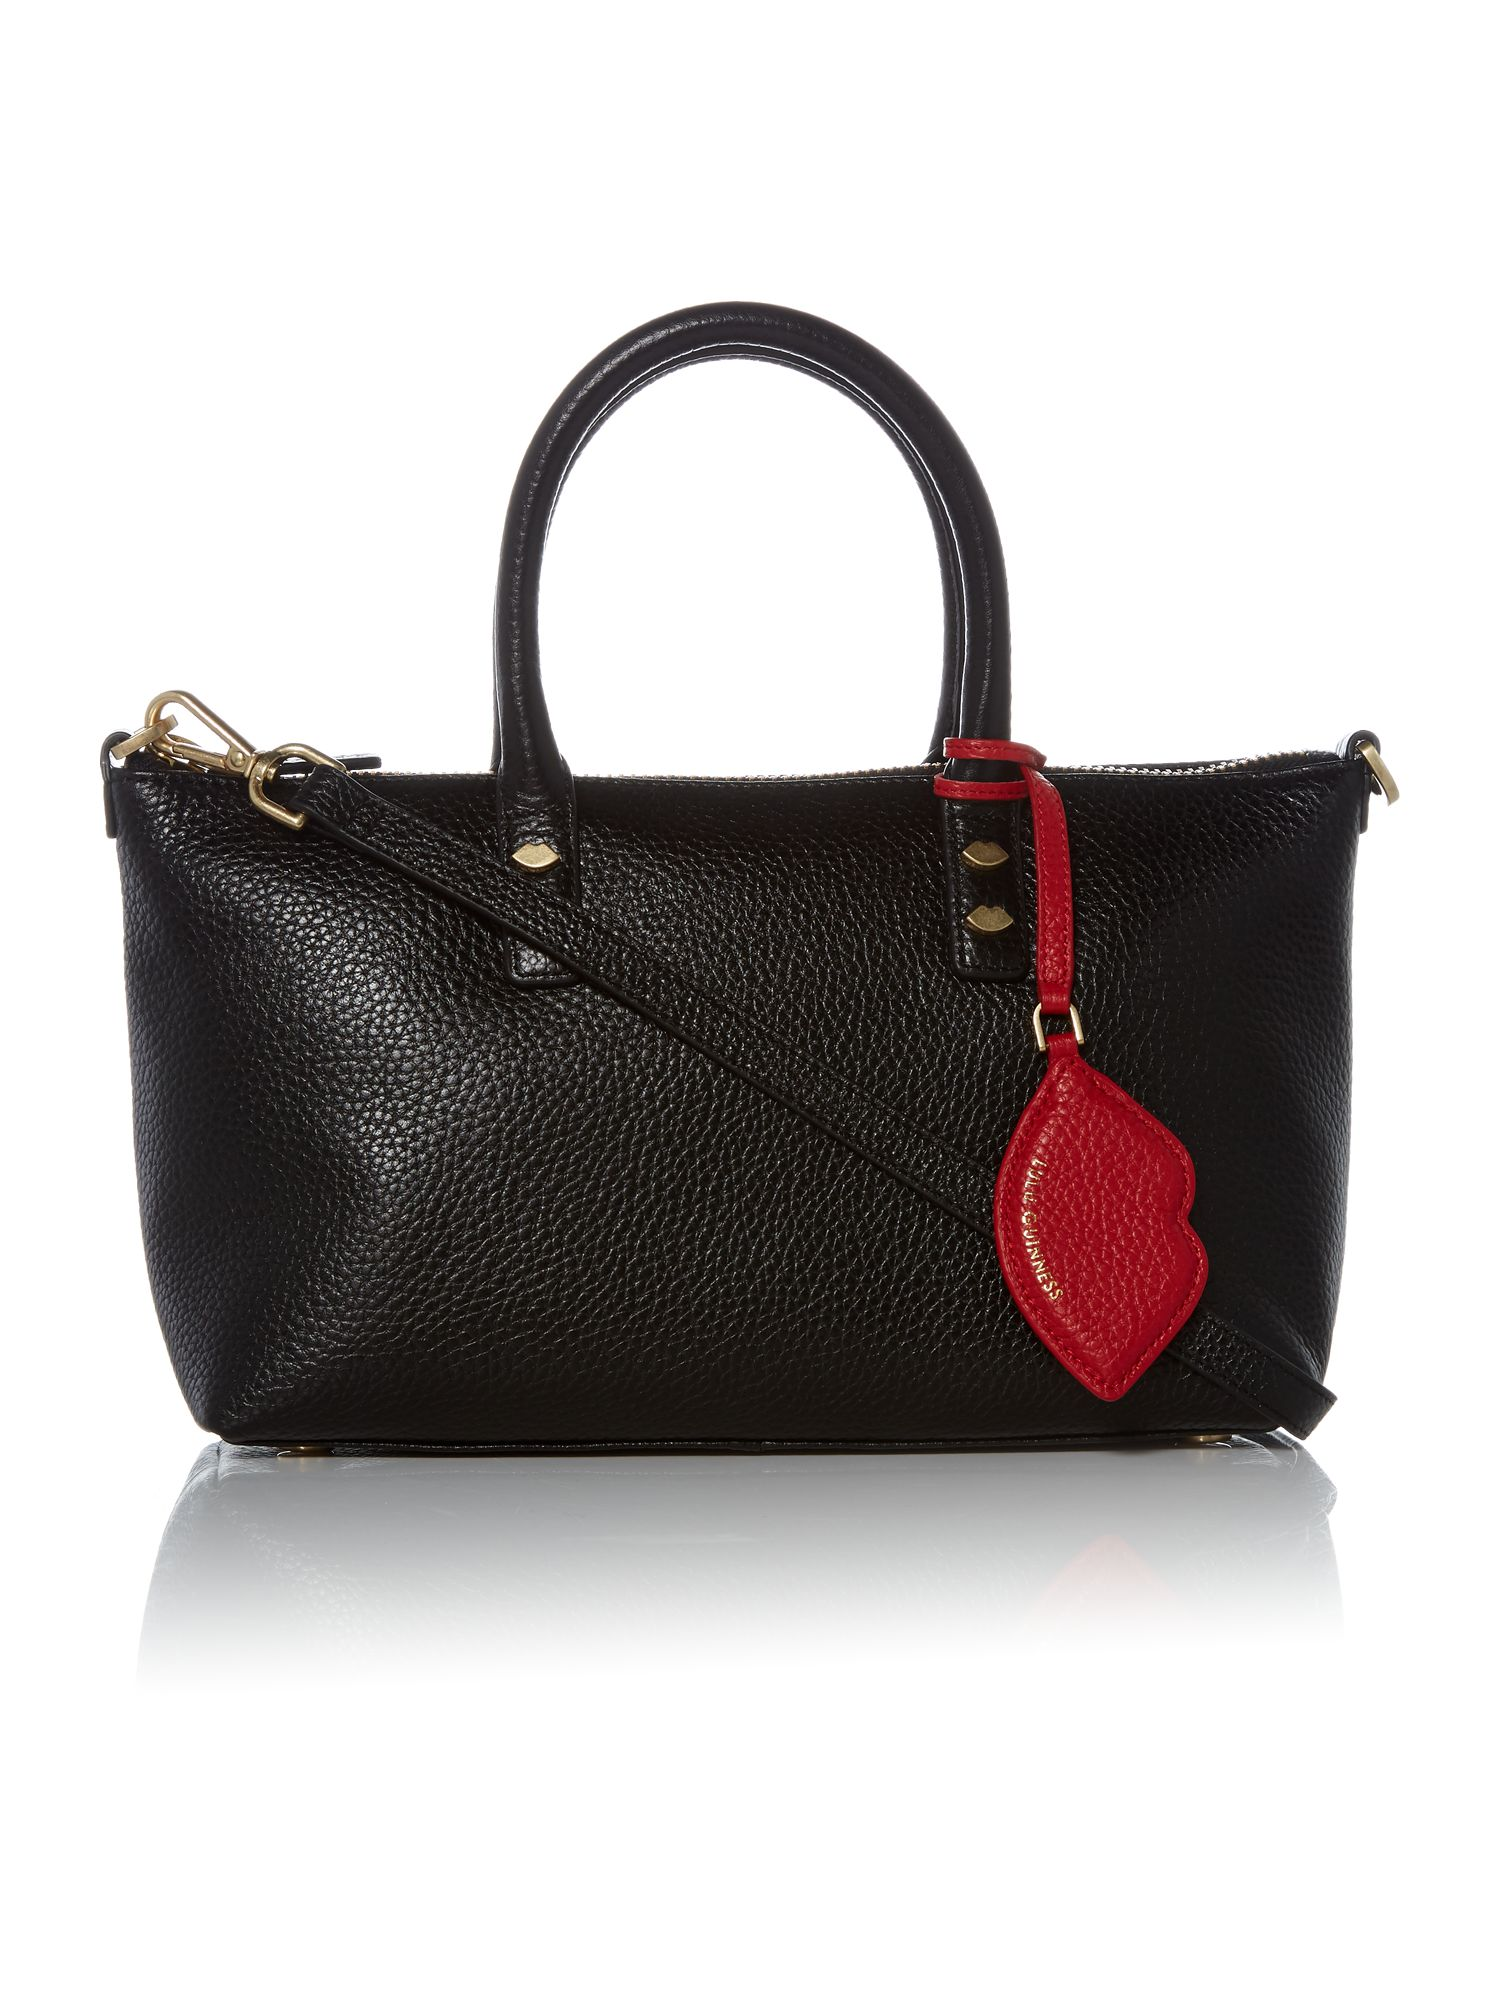 Lulu Guinness Frances Small Tote Bag with Lip Charm, Black